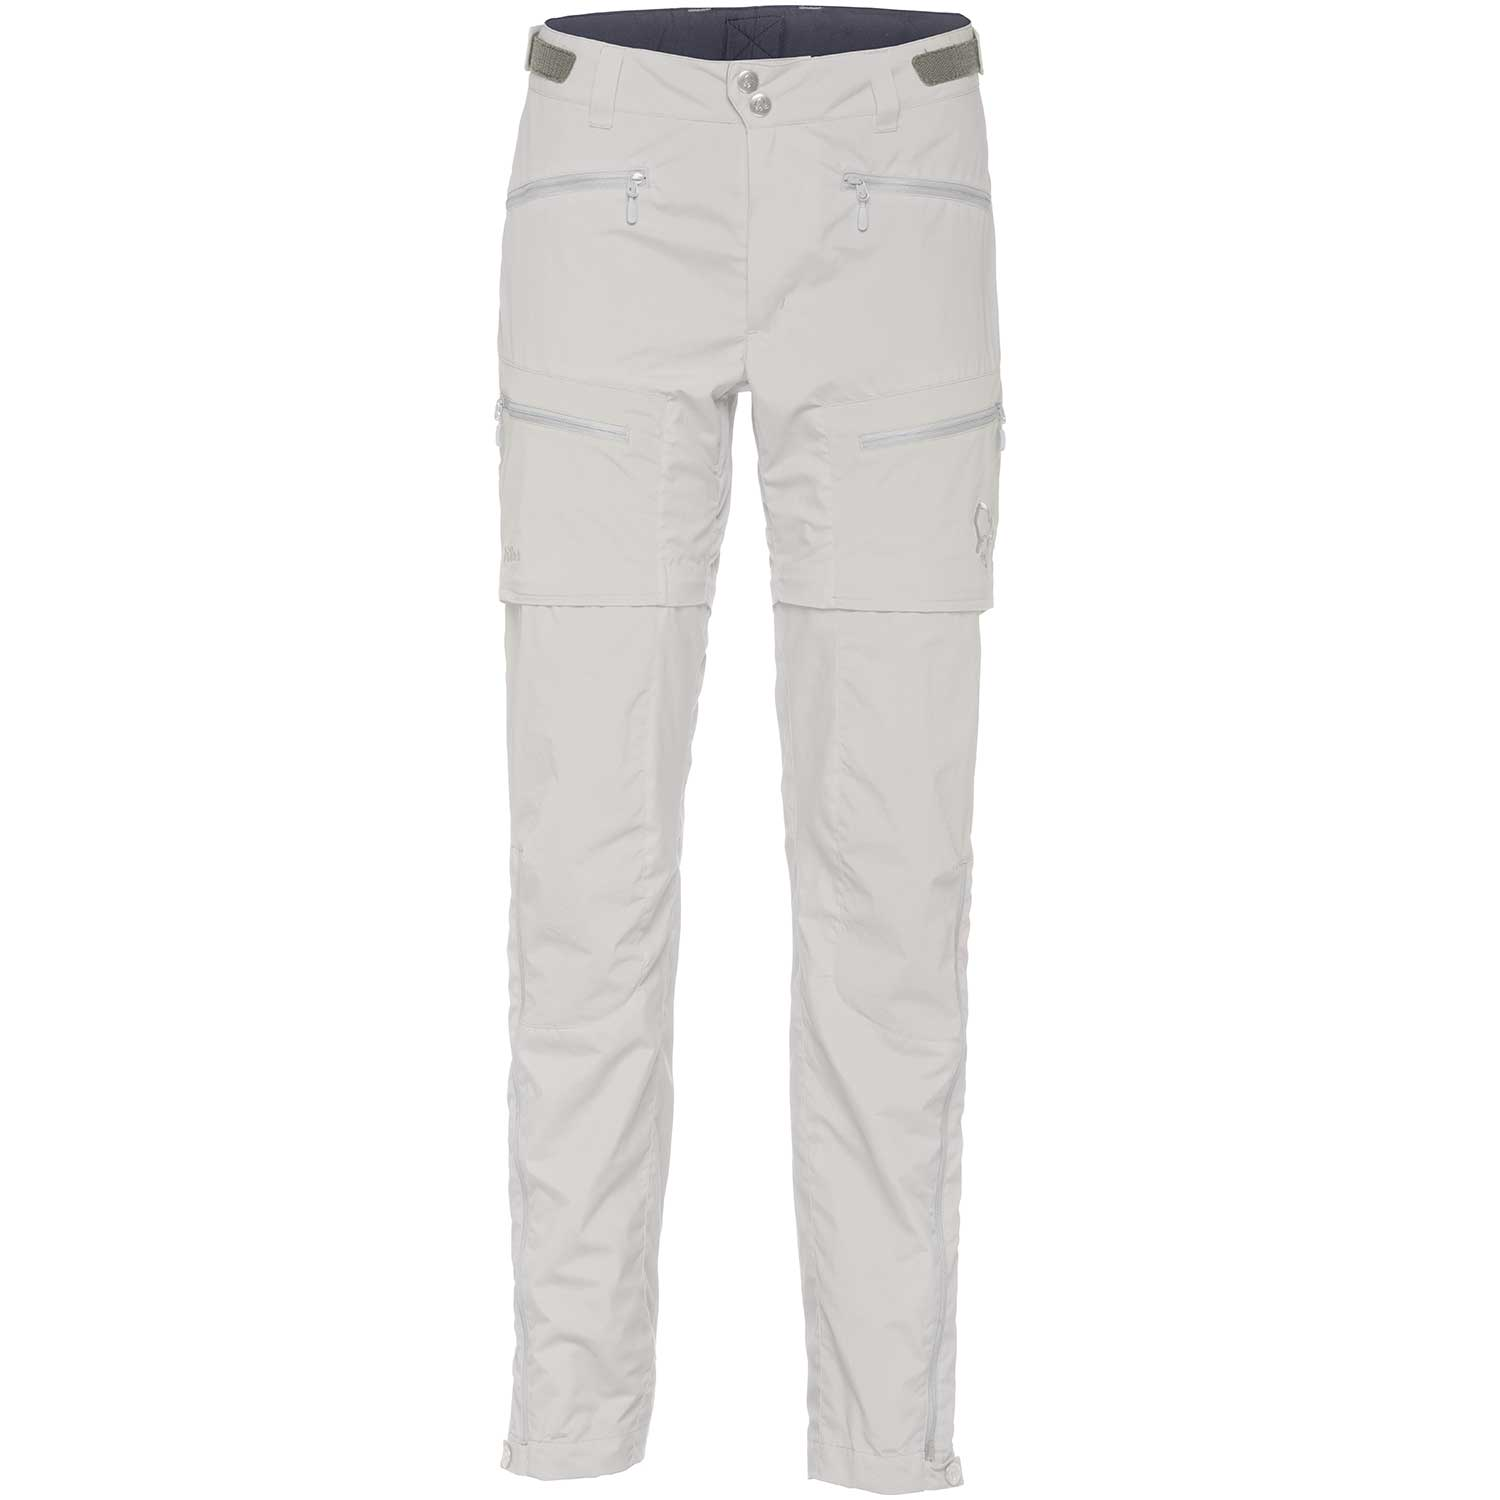 bitihorn Zip off Pants (W)